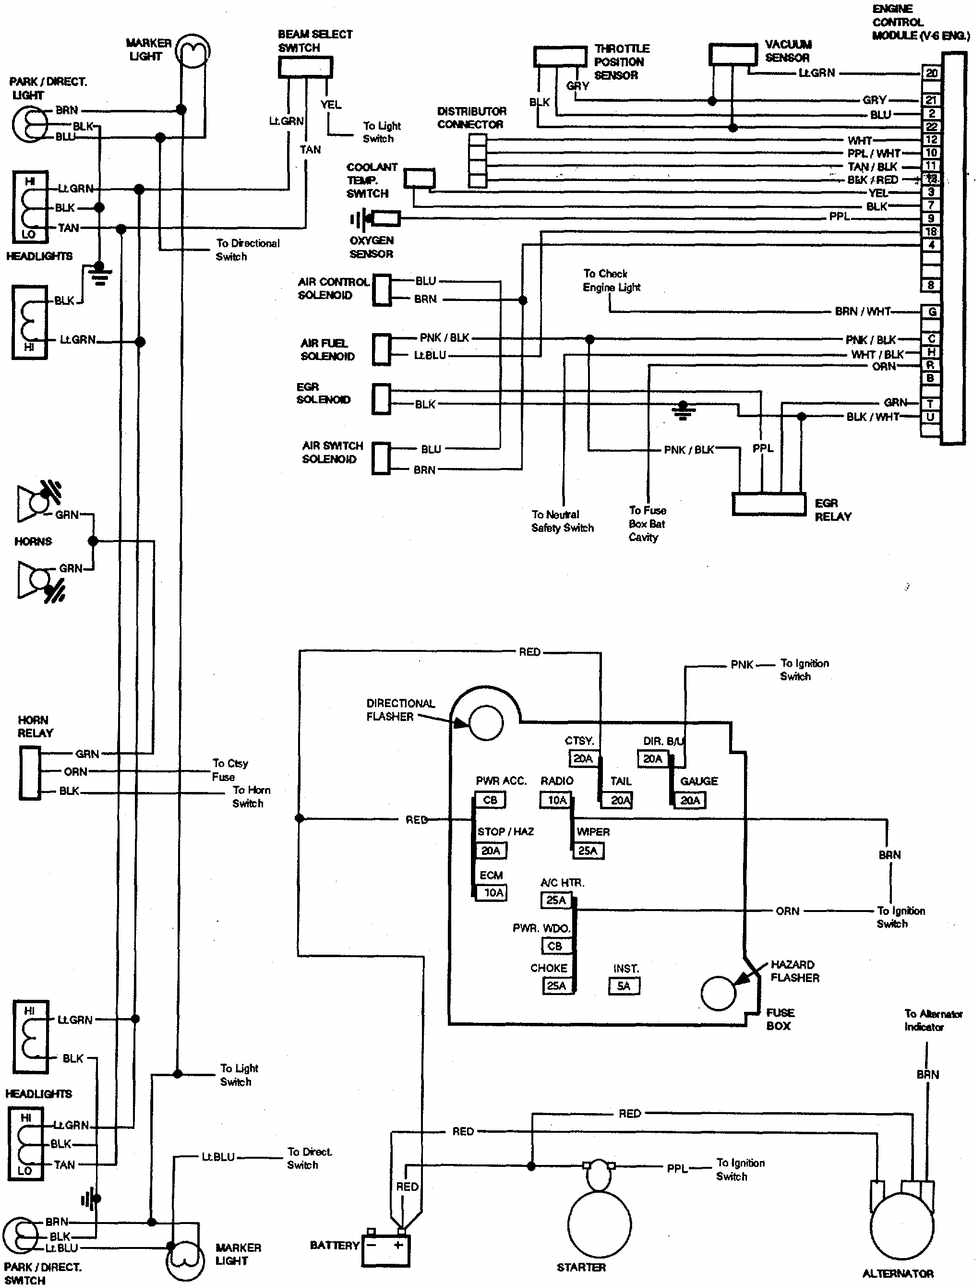 1991 chevy truck turn signal wiring diagram  u2022 wiring